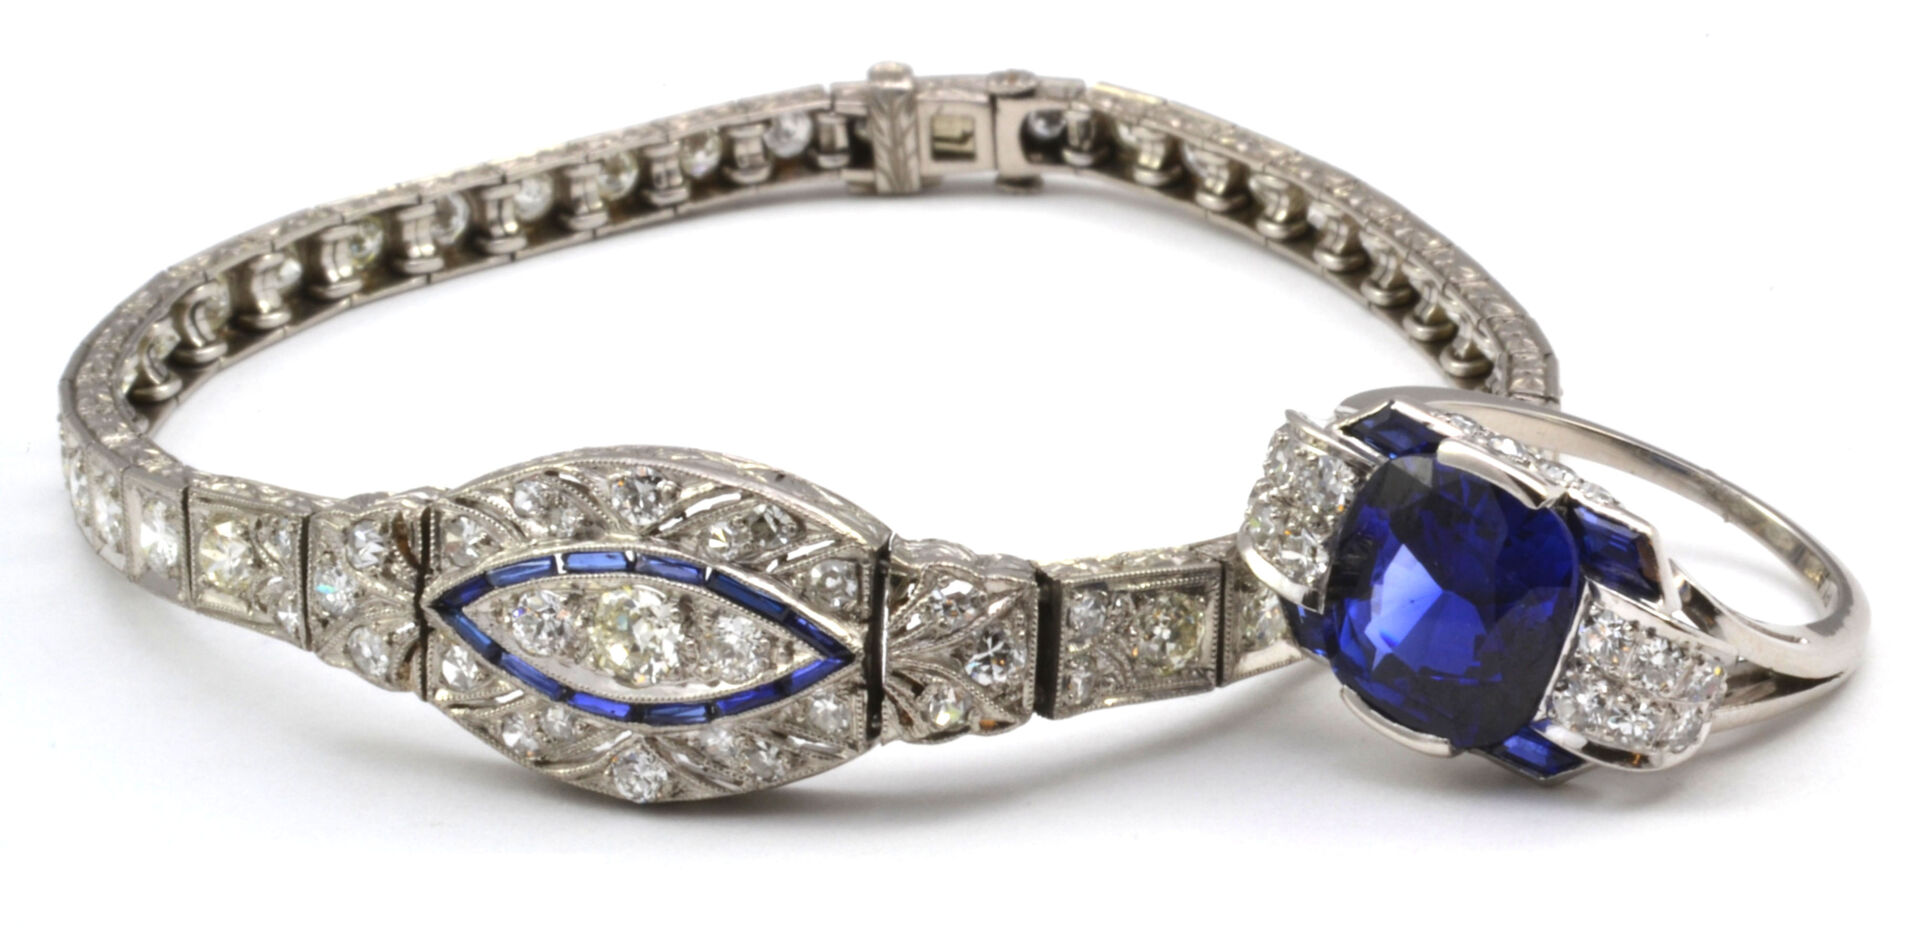 . What are some characteristics of Art Deco Jewelry